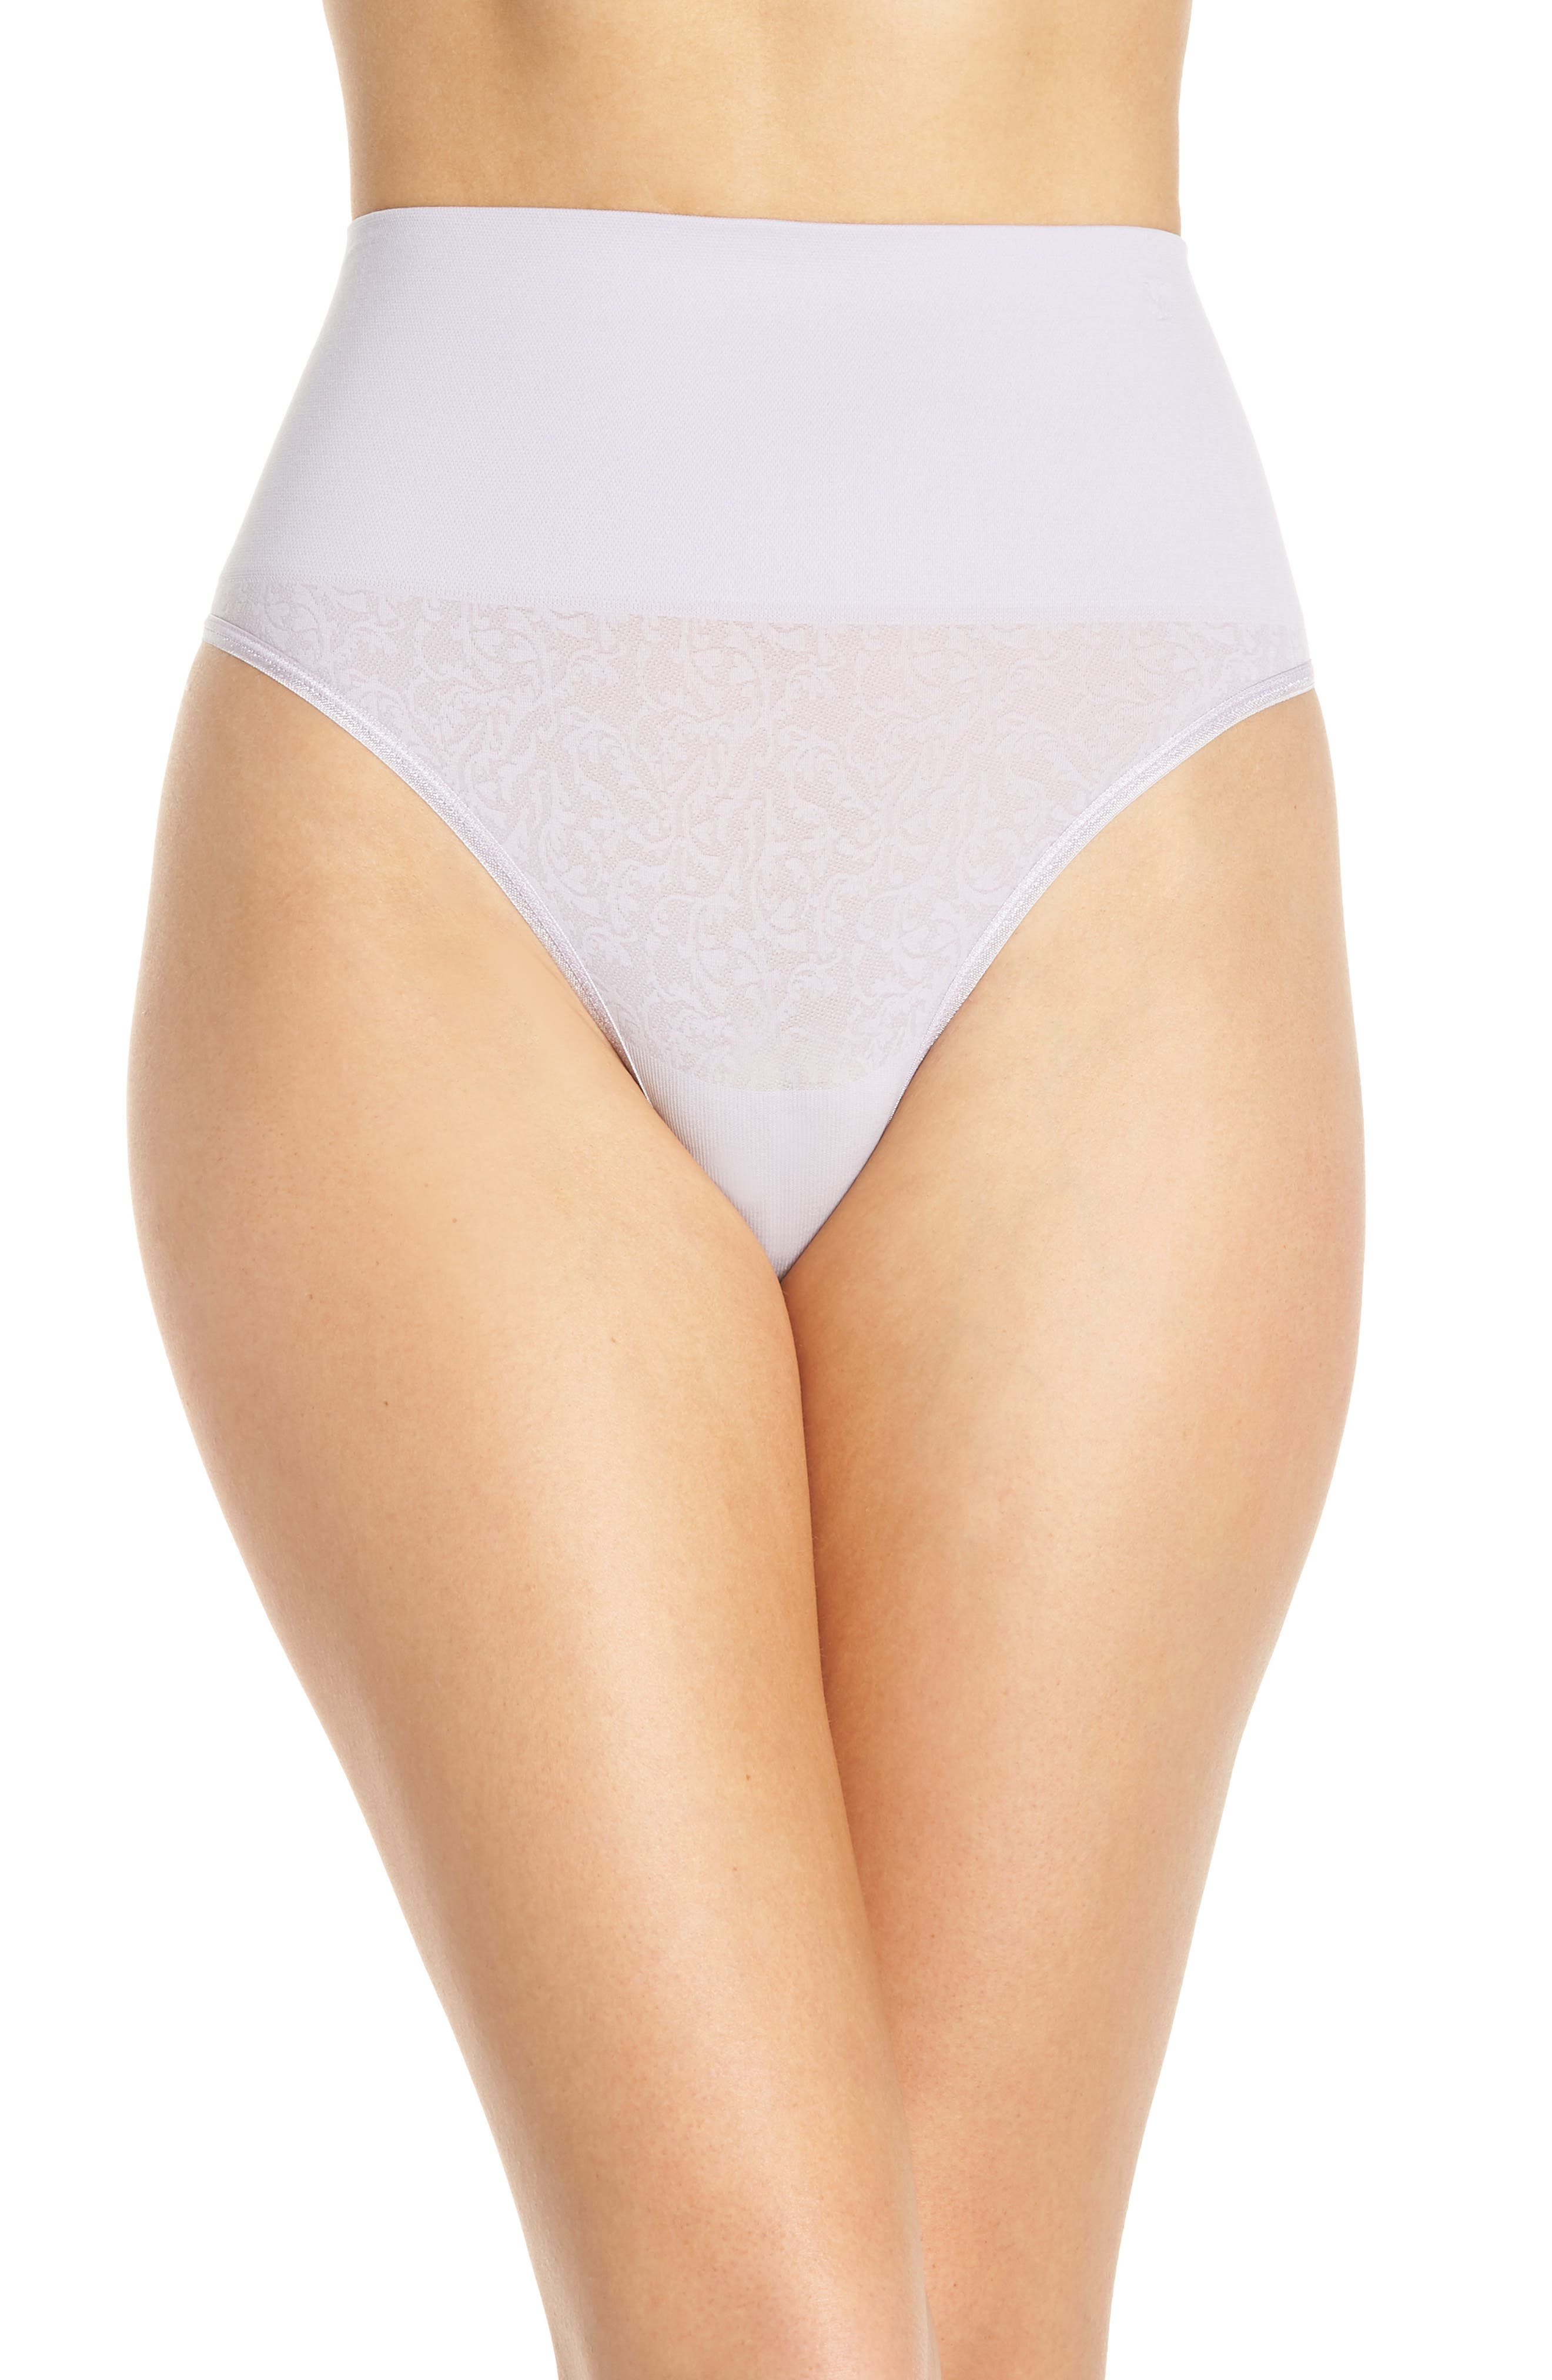 YUMMIE Ultralight Seamless Shaping Thong, Main, color, THISTLE W/ JACQUARD